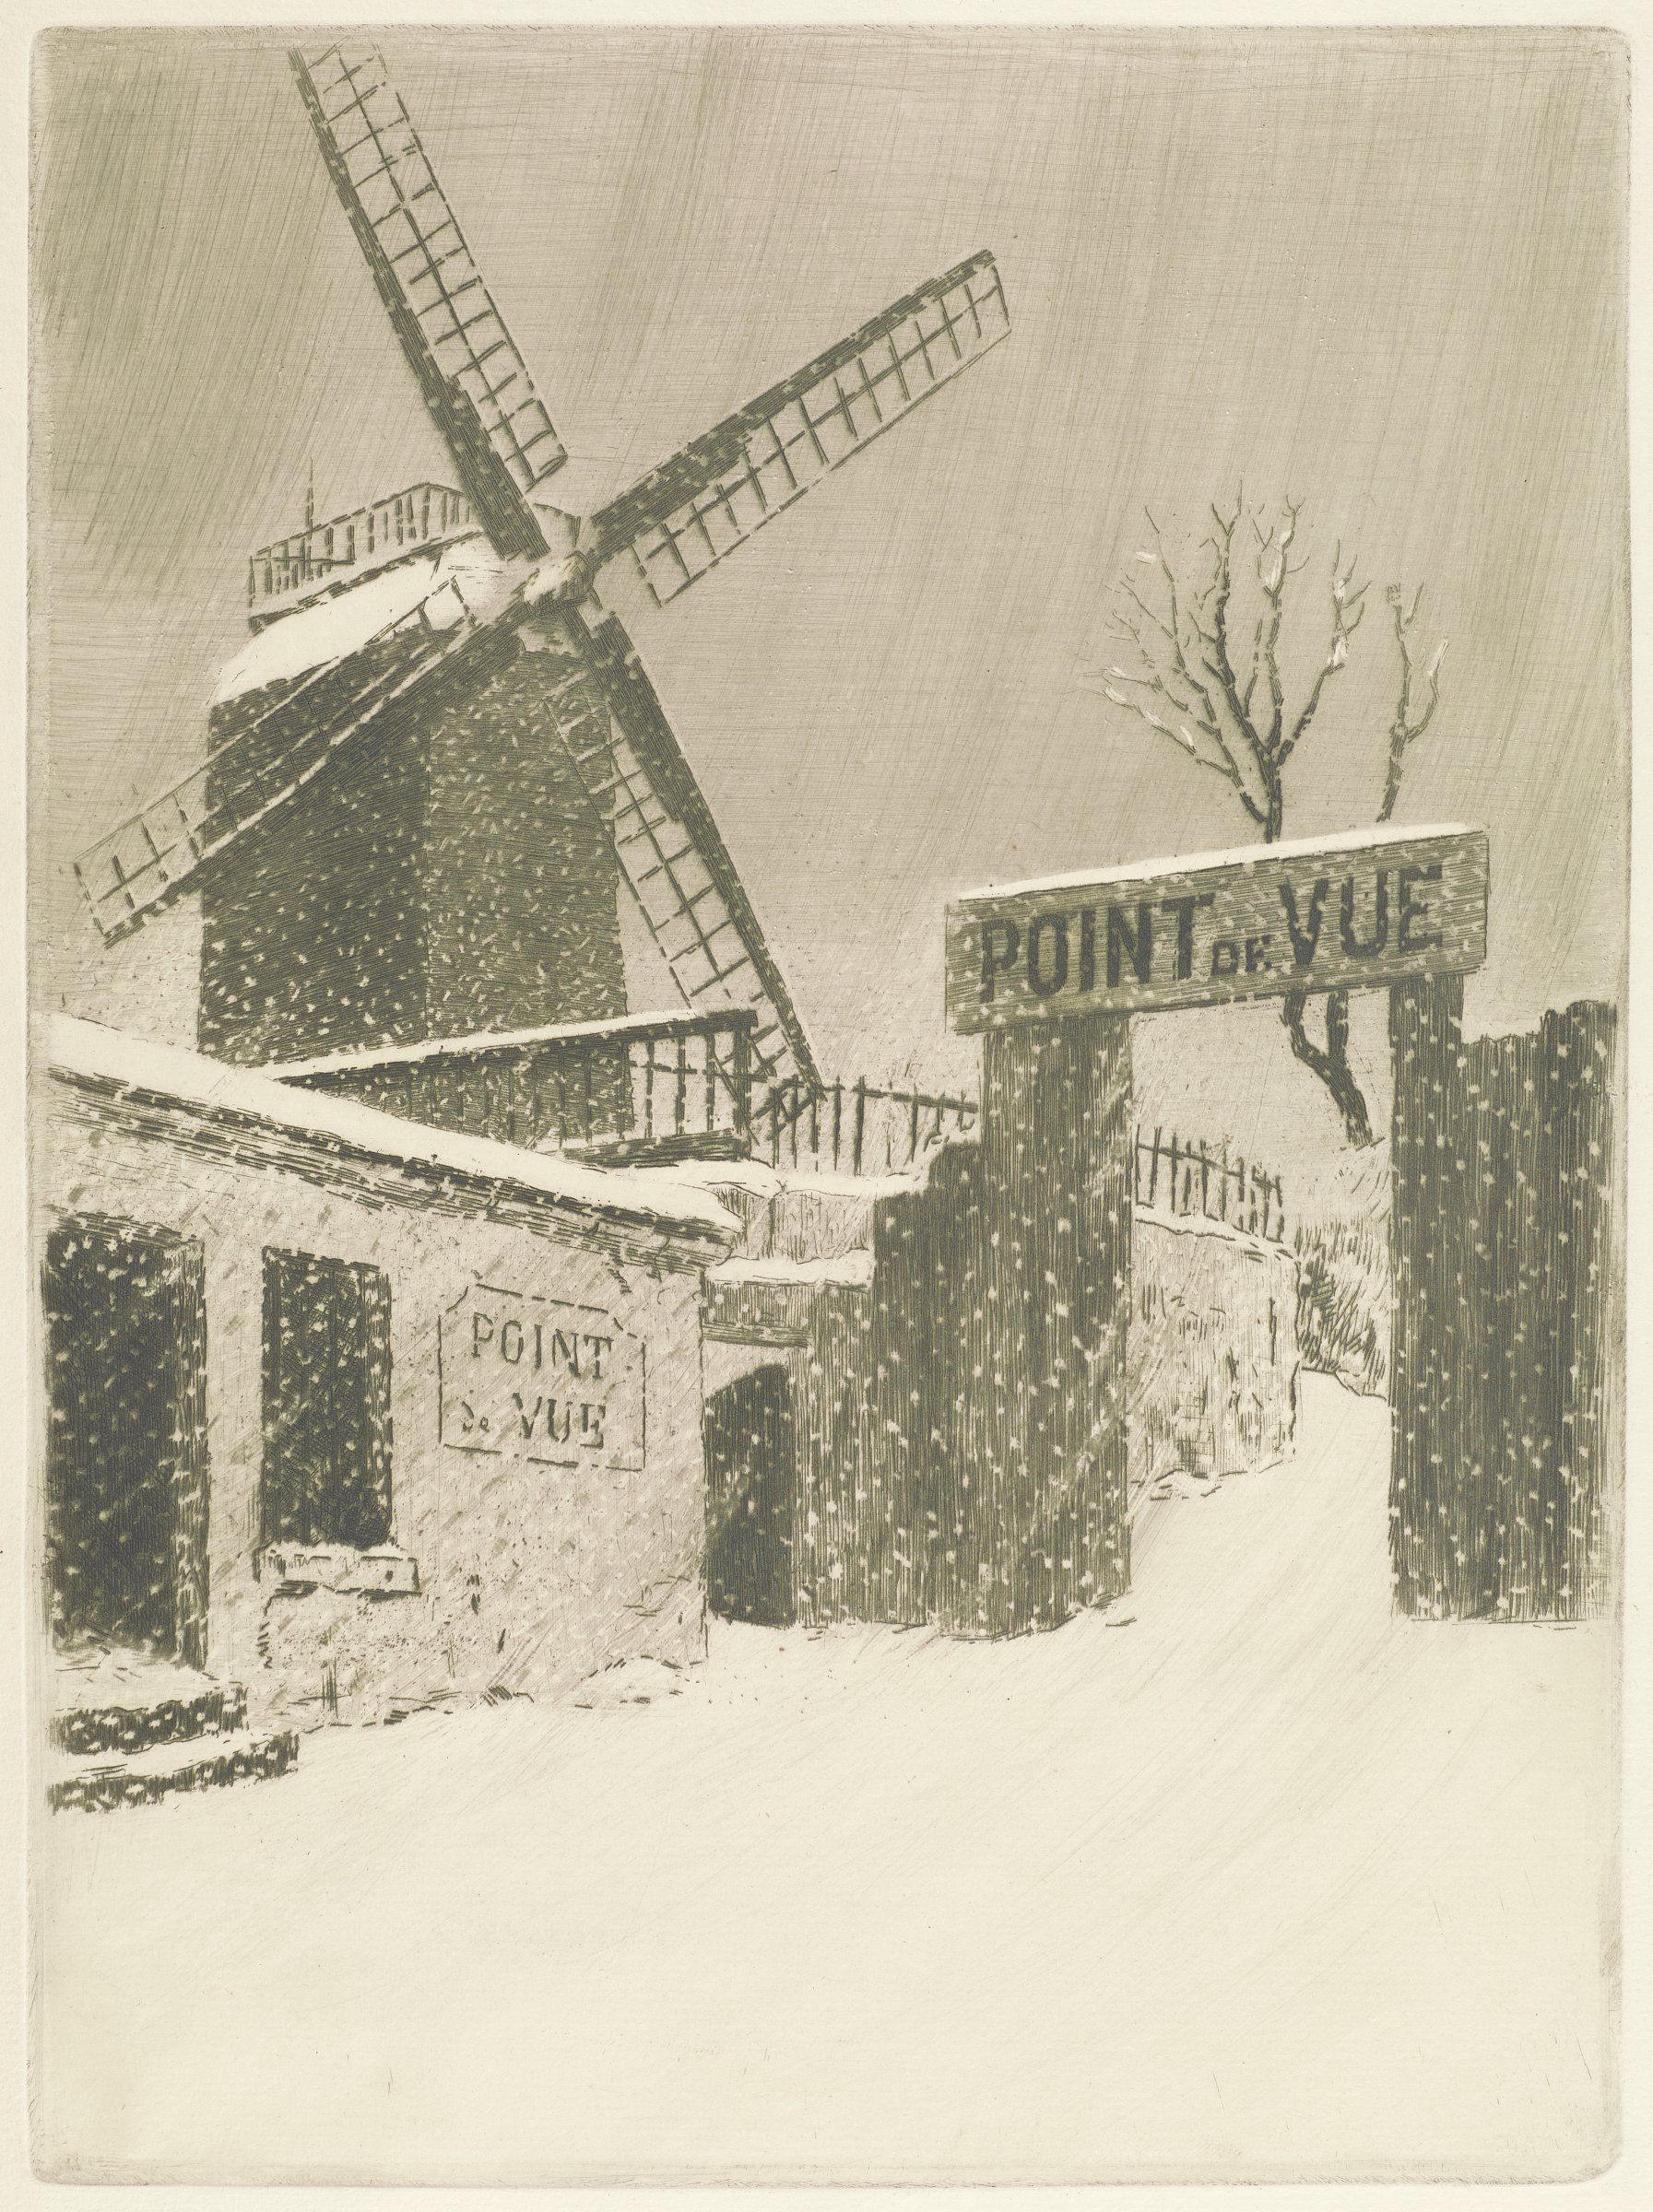 """A small building and a fence with signs that read """"Point de Vue"""" make up the center of the composition. A windmill stands in the background. This scene is set during a snowfall."""